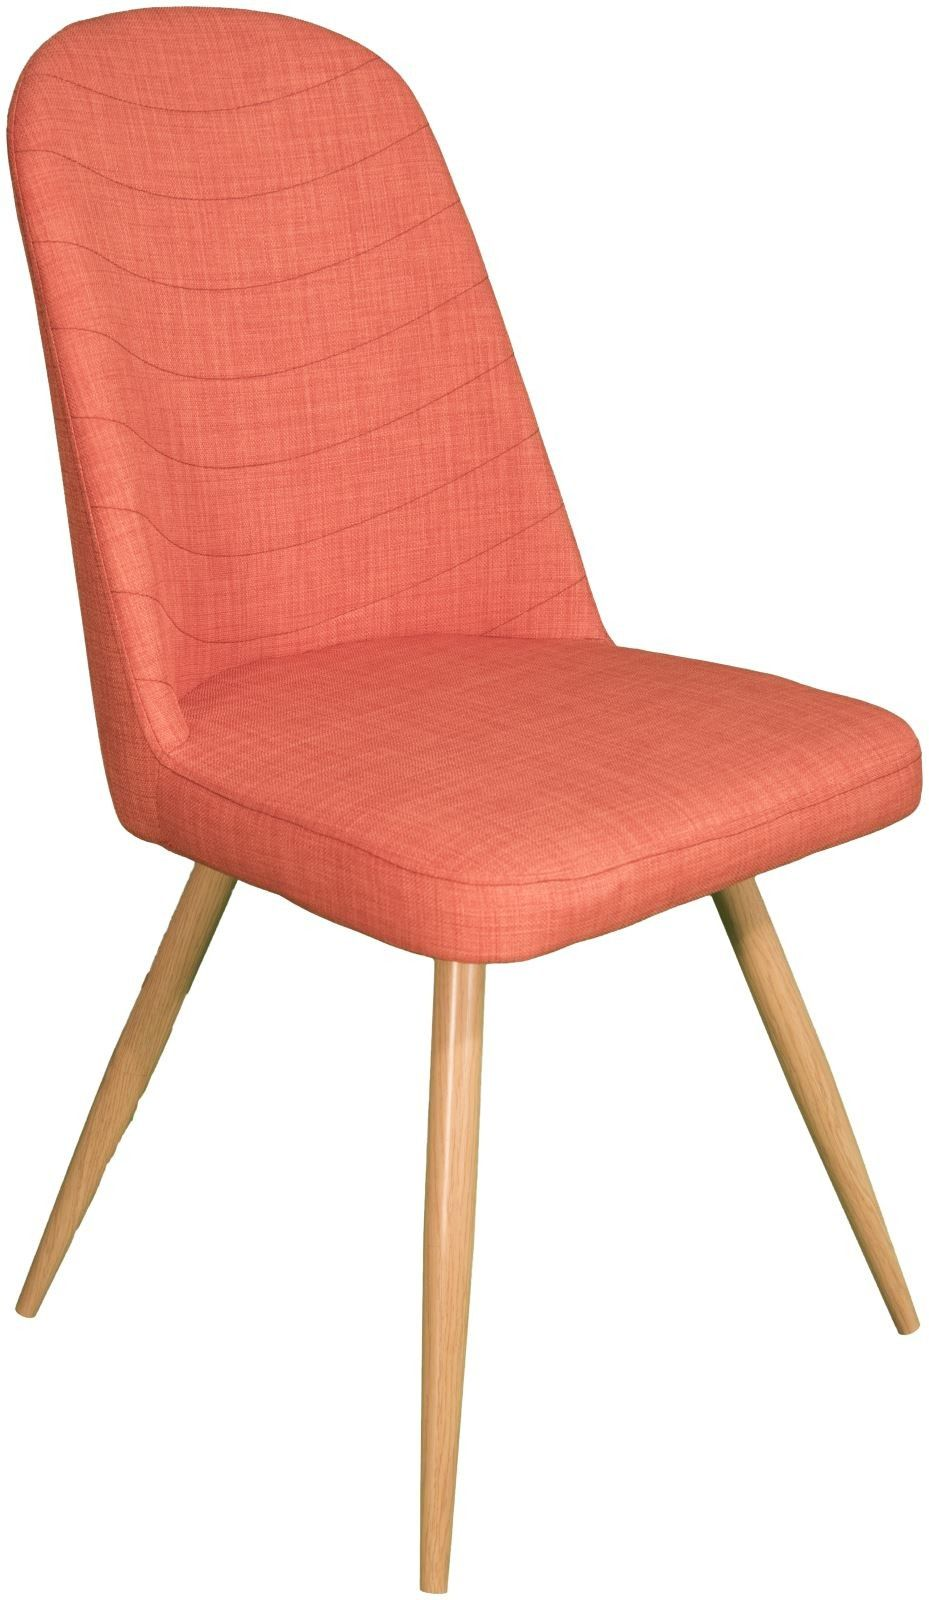 Reya Dining Chair Orange